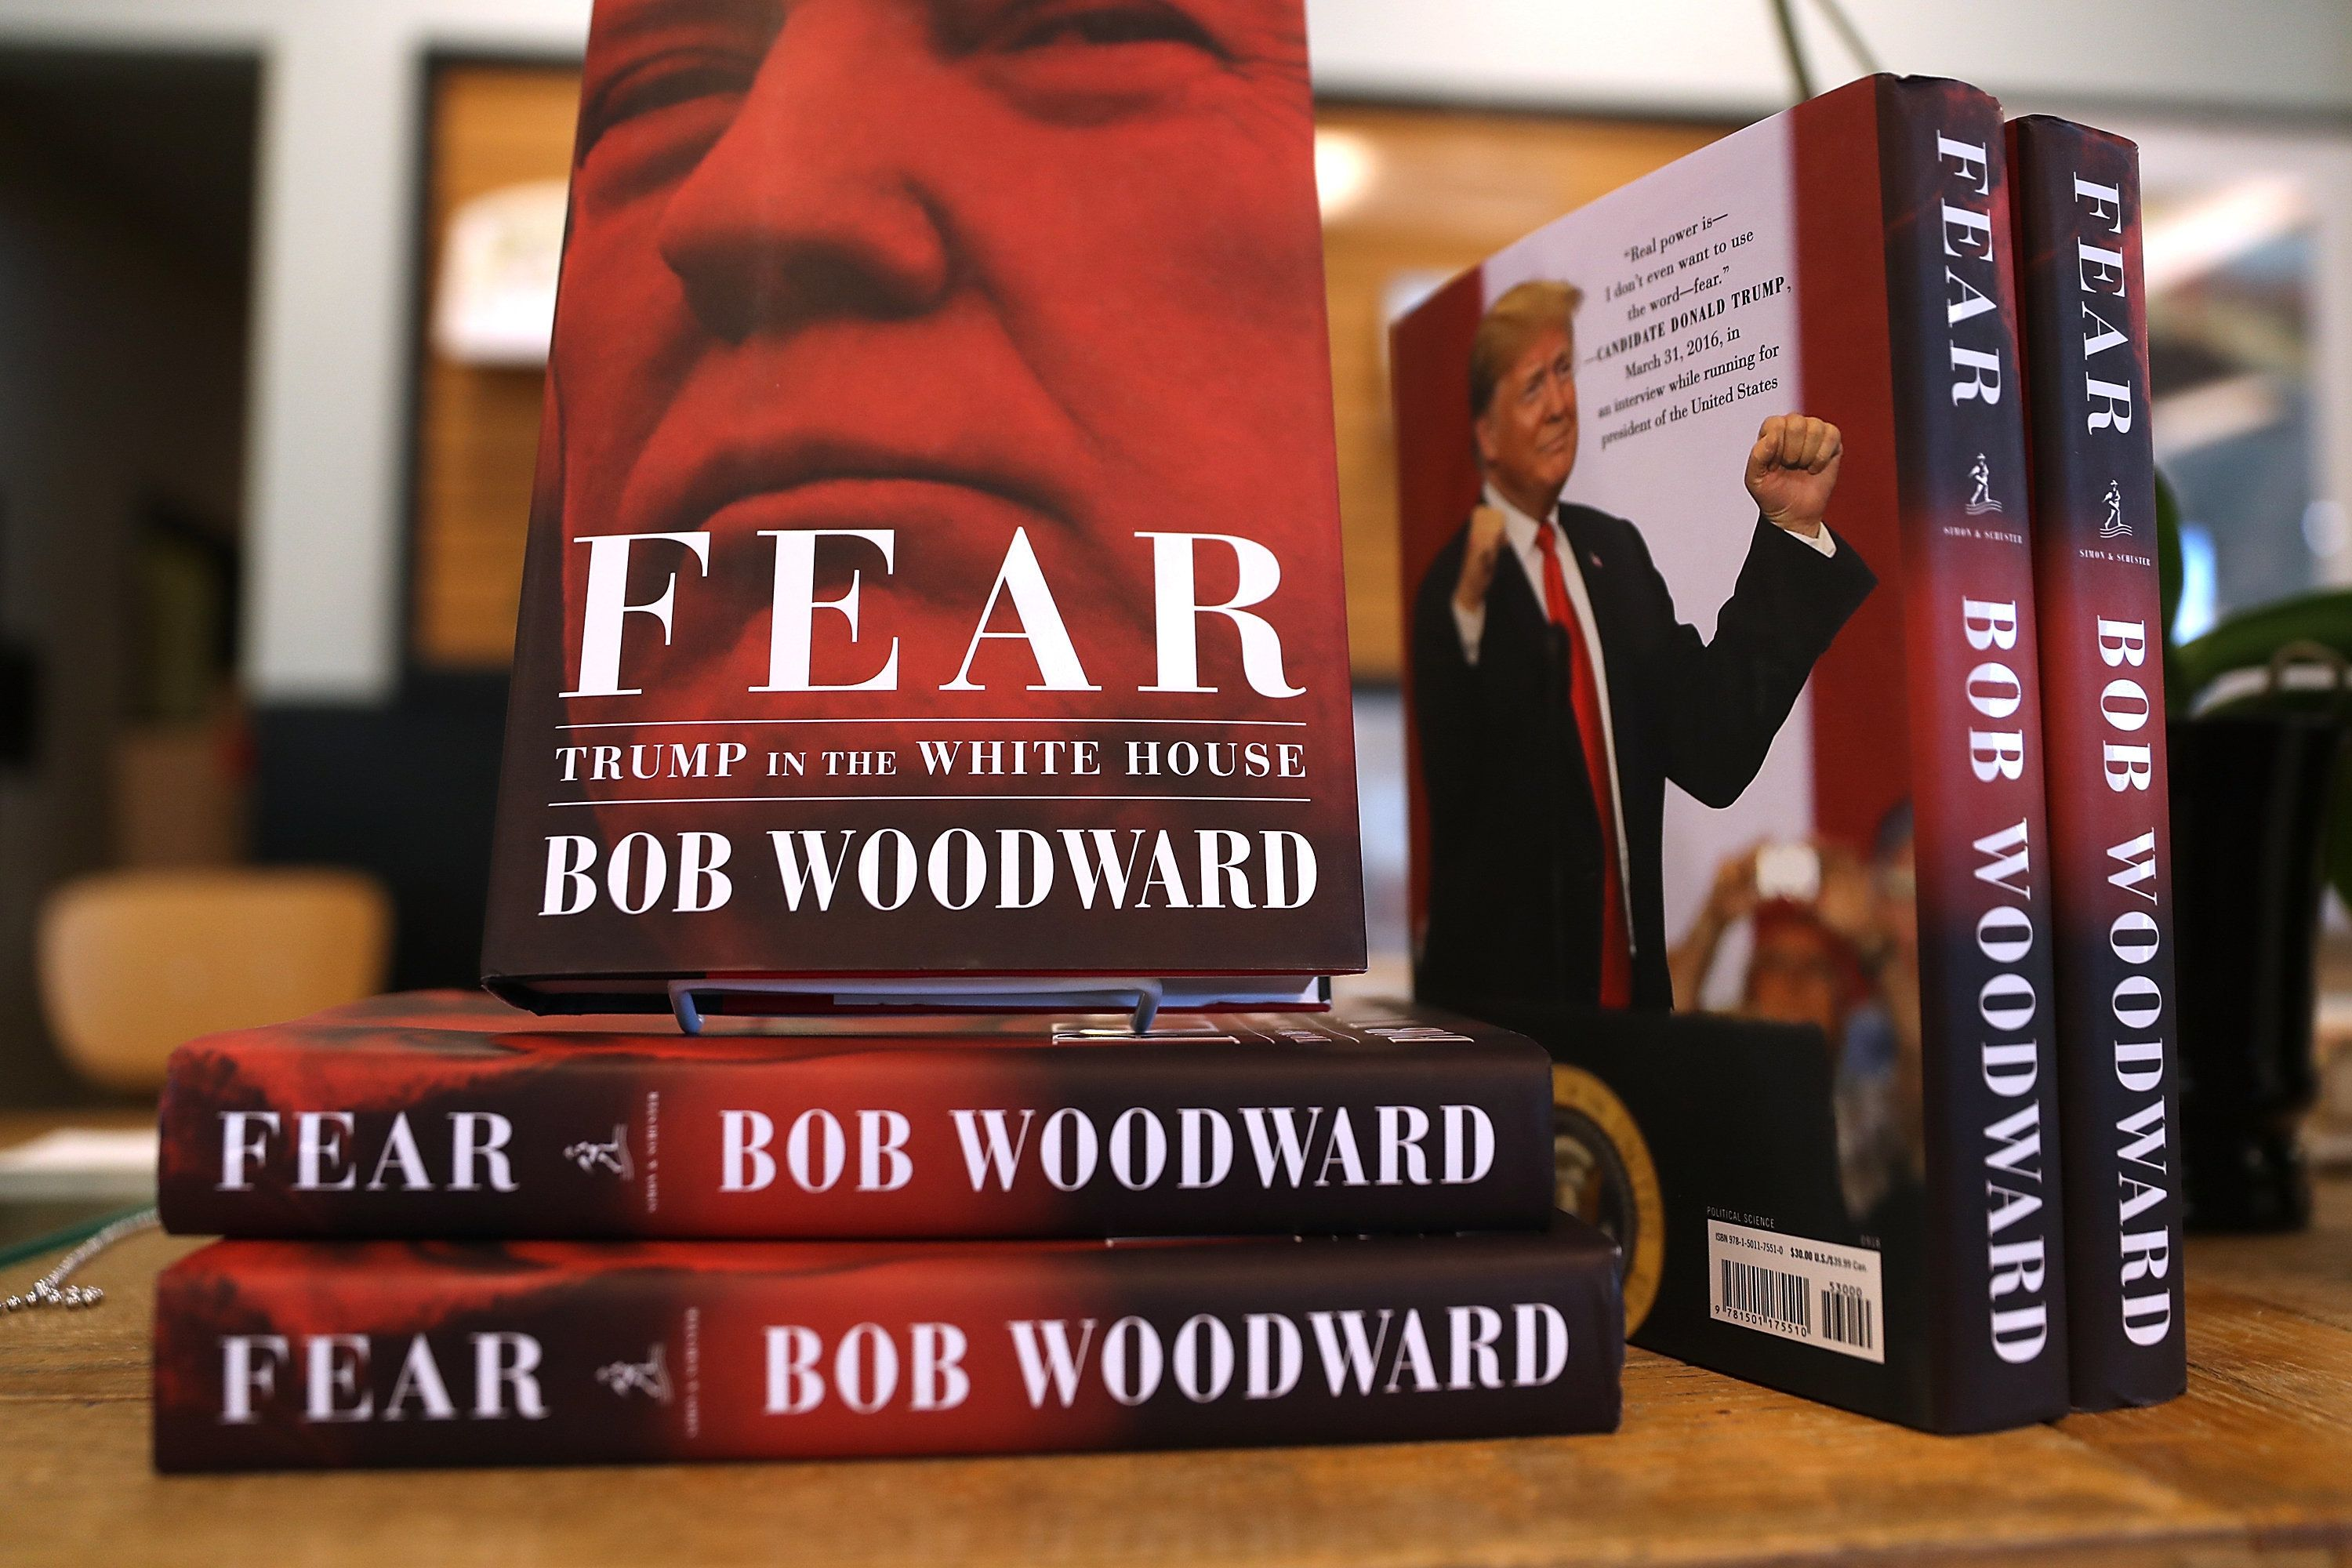 USA | Woodward book goes on sale as ex-Trump aides push back